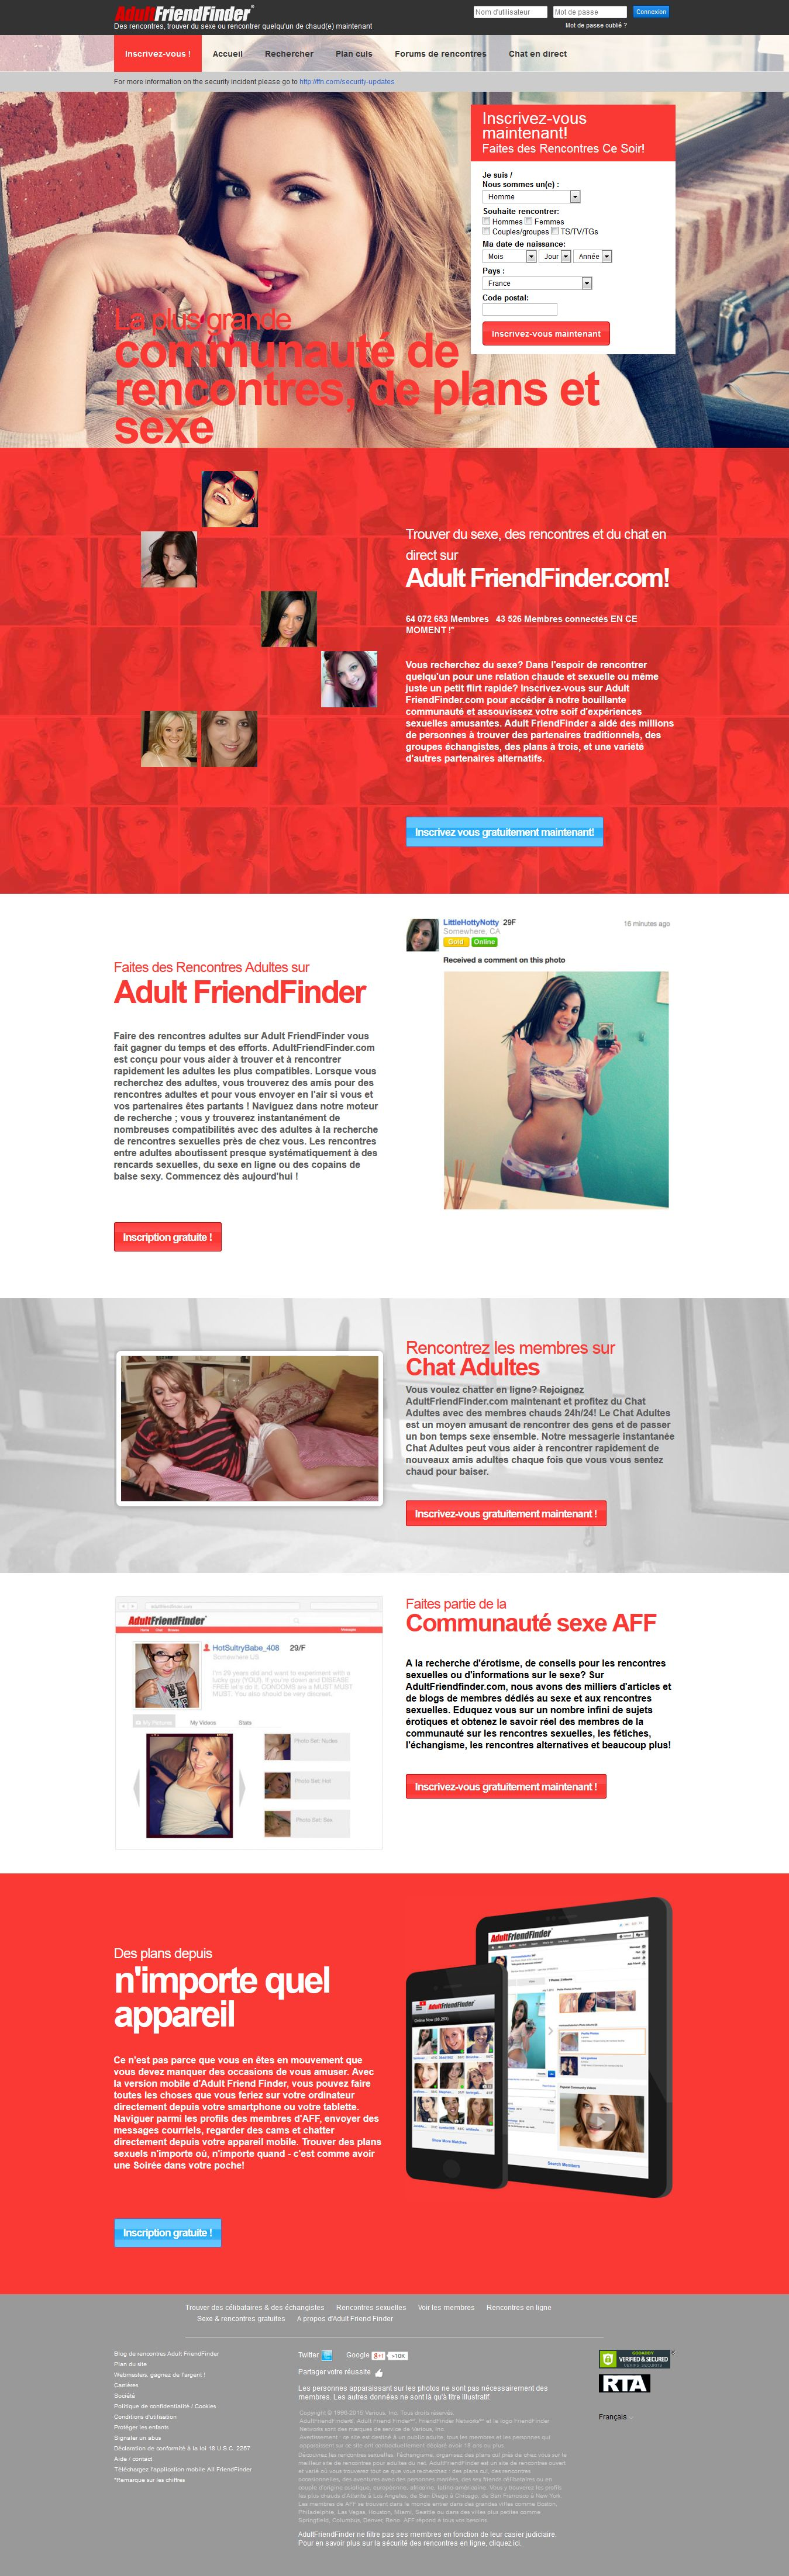 adultfriendfinder_com